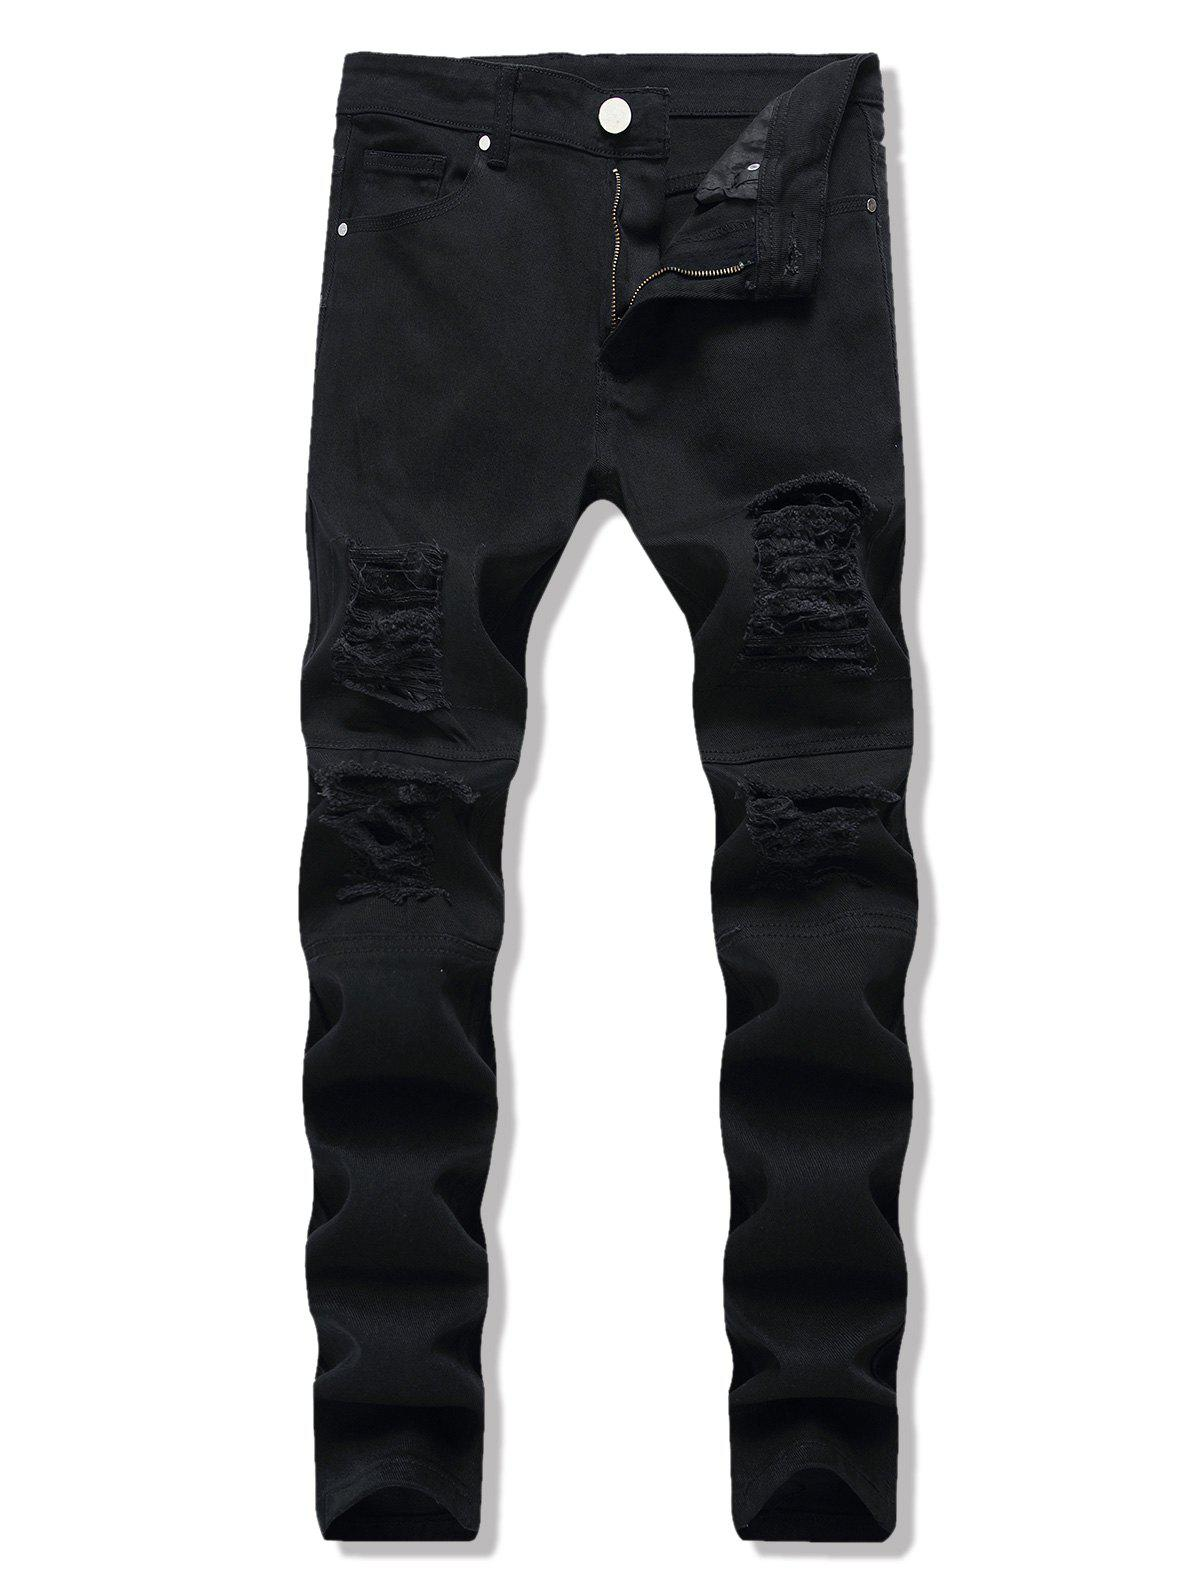 Distressed Dark Wash Tapered Jeans - BLACK 38